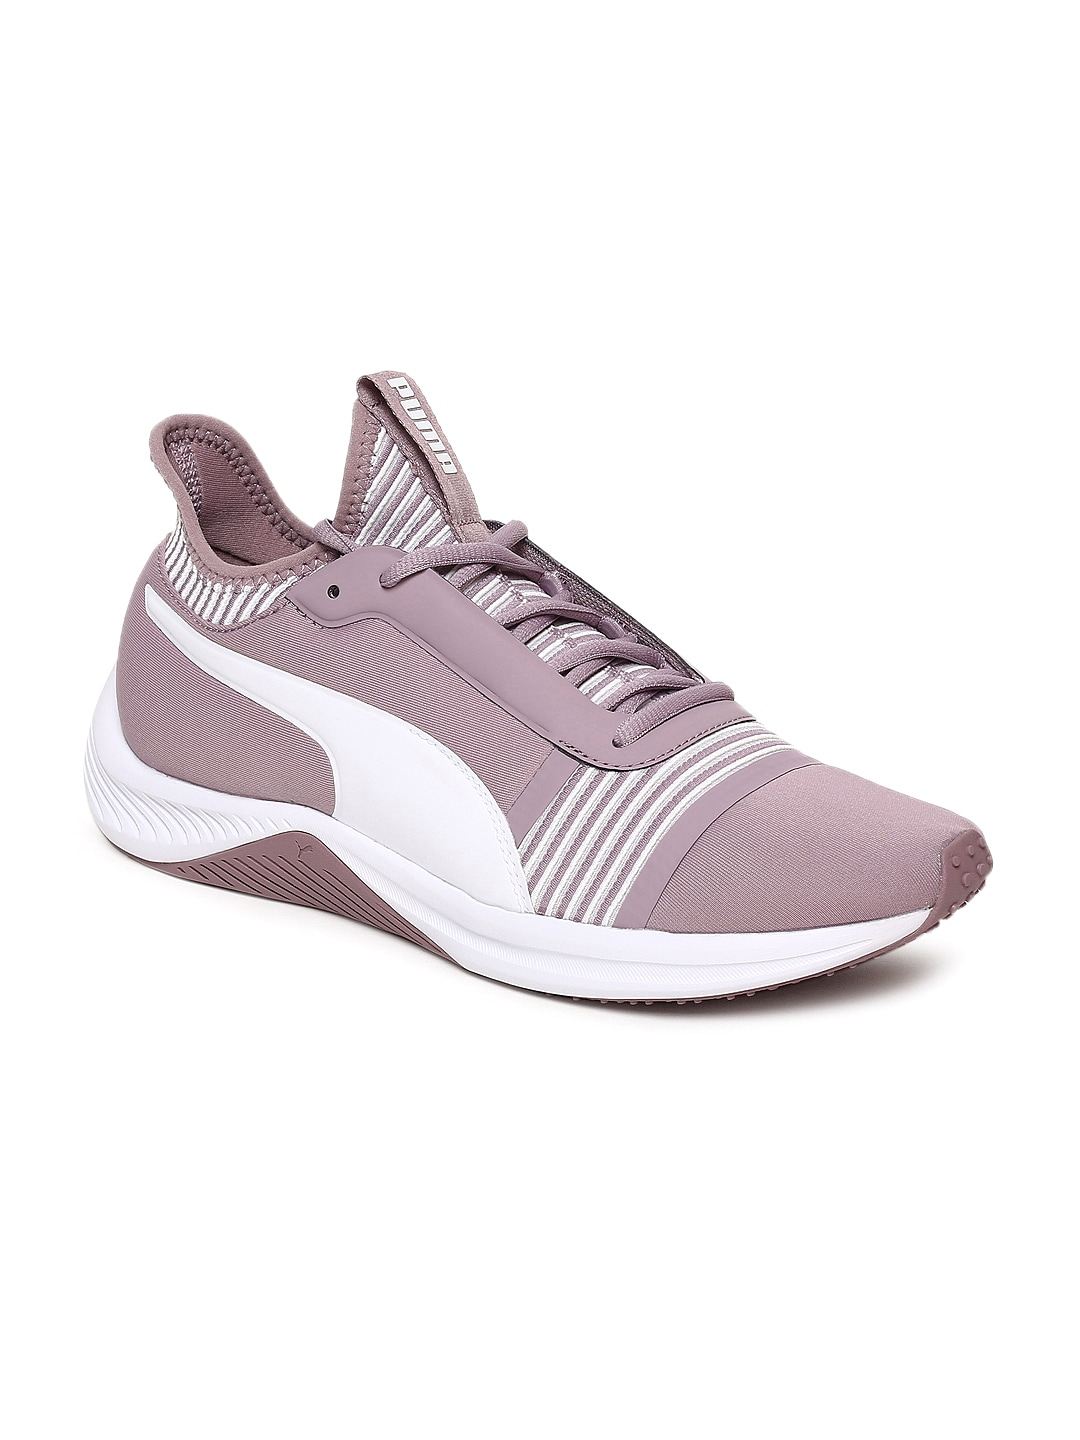 6acc28420c94 Gym Shoes - Buy Trendy Gym Shoes For Men   Women Online